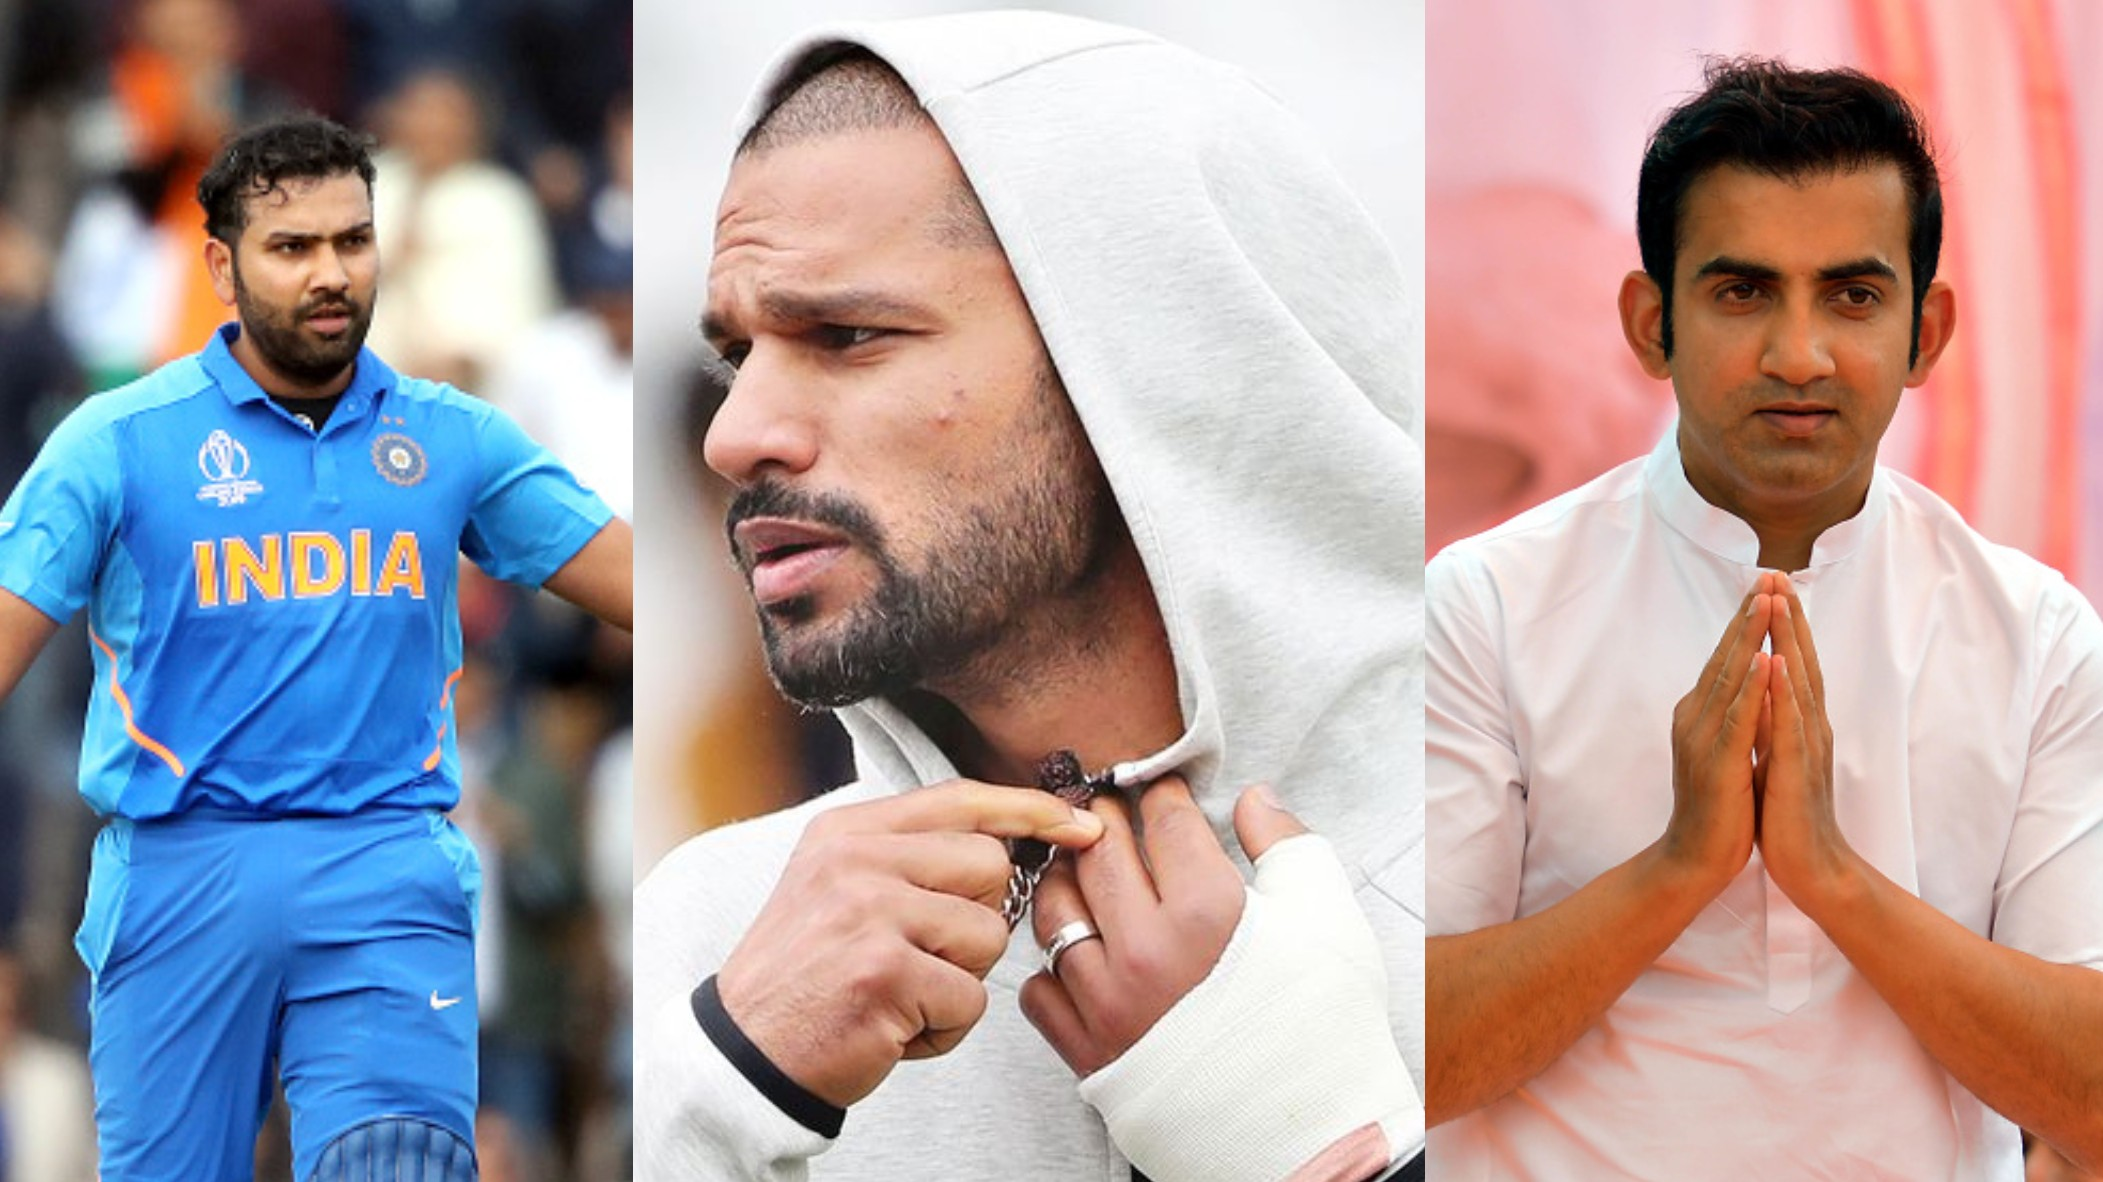 CWC 2019: Indian Cricket fraternity reacts to Shikhar Dhawan being ruled out of World Cup